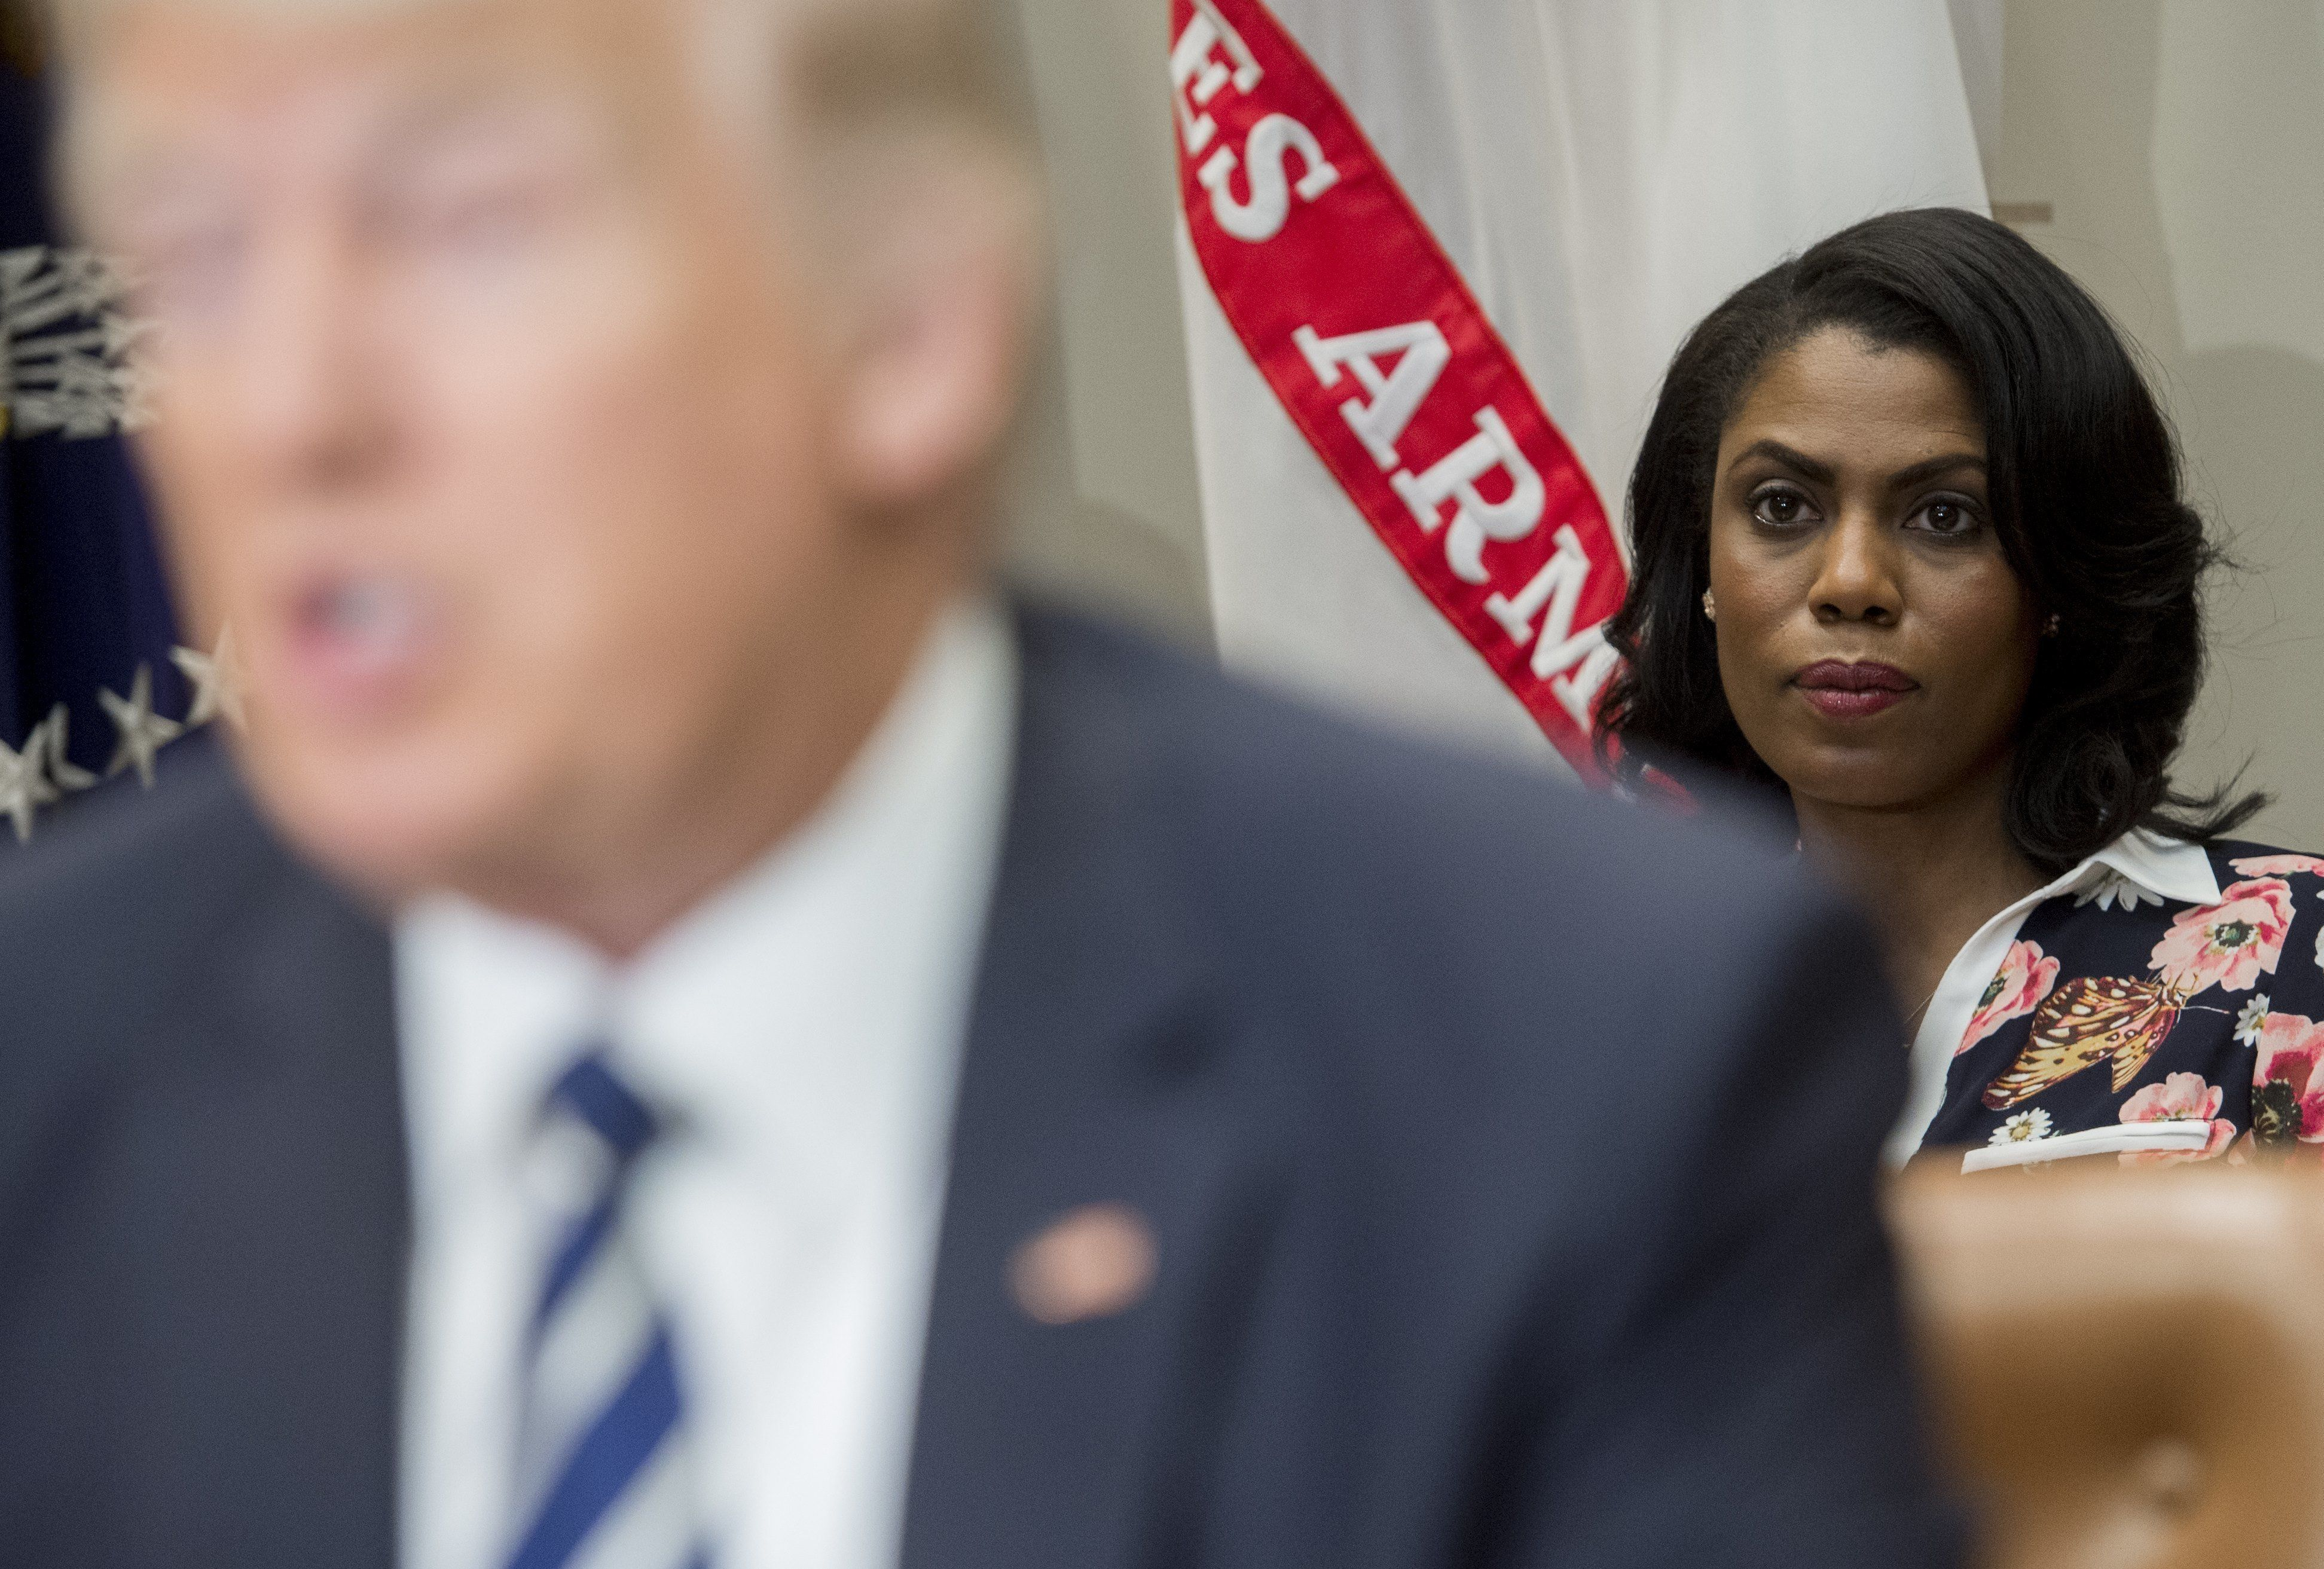 Omarosa Manigault (R), White House Director of Communications for the Office of Public Liaison, sits behind US President Donald Trump as he speaks during a meeting with teachers, school administrators and parents in the Roosevelt Room of the White House in Washington, DC, February 14, 2017. / AFP / SAUL LOEB        (Photo credit should read SAUL LOEB/AFP/Getty Images)